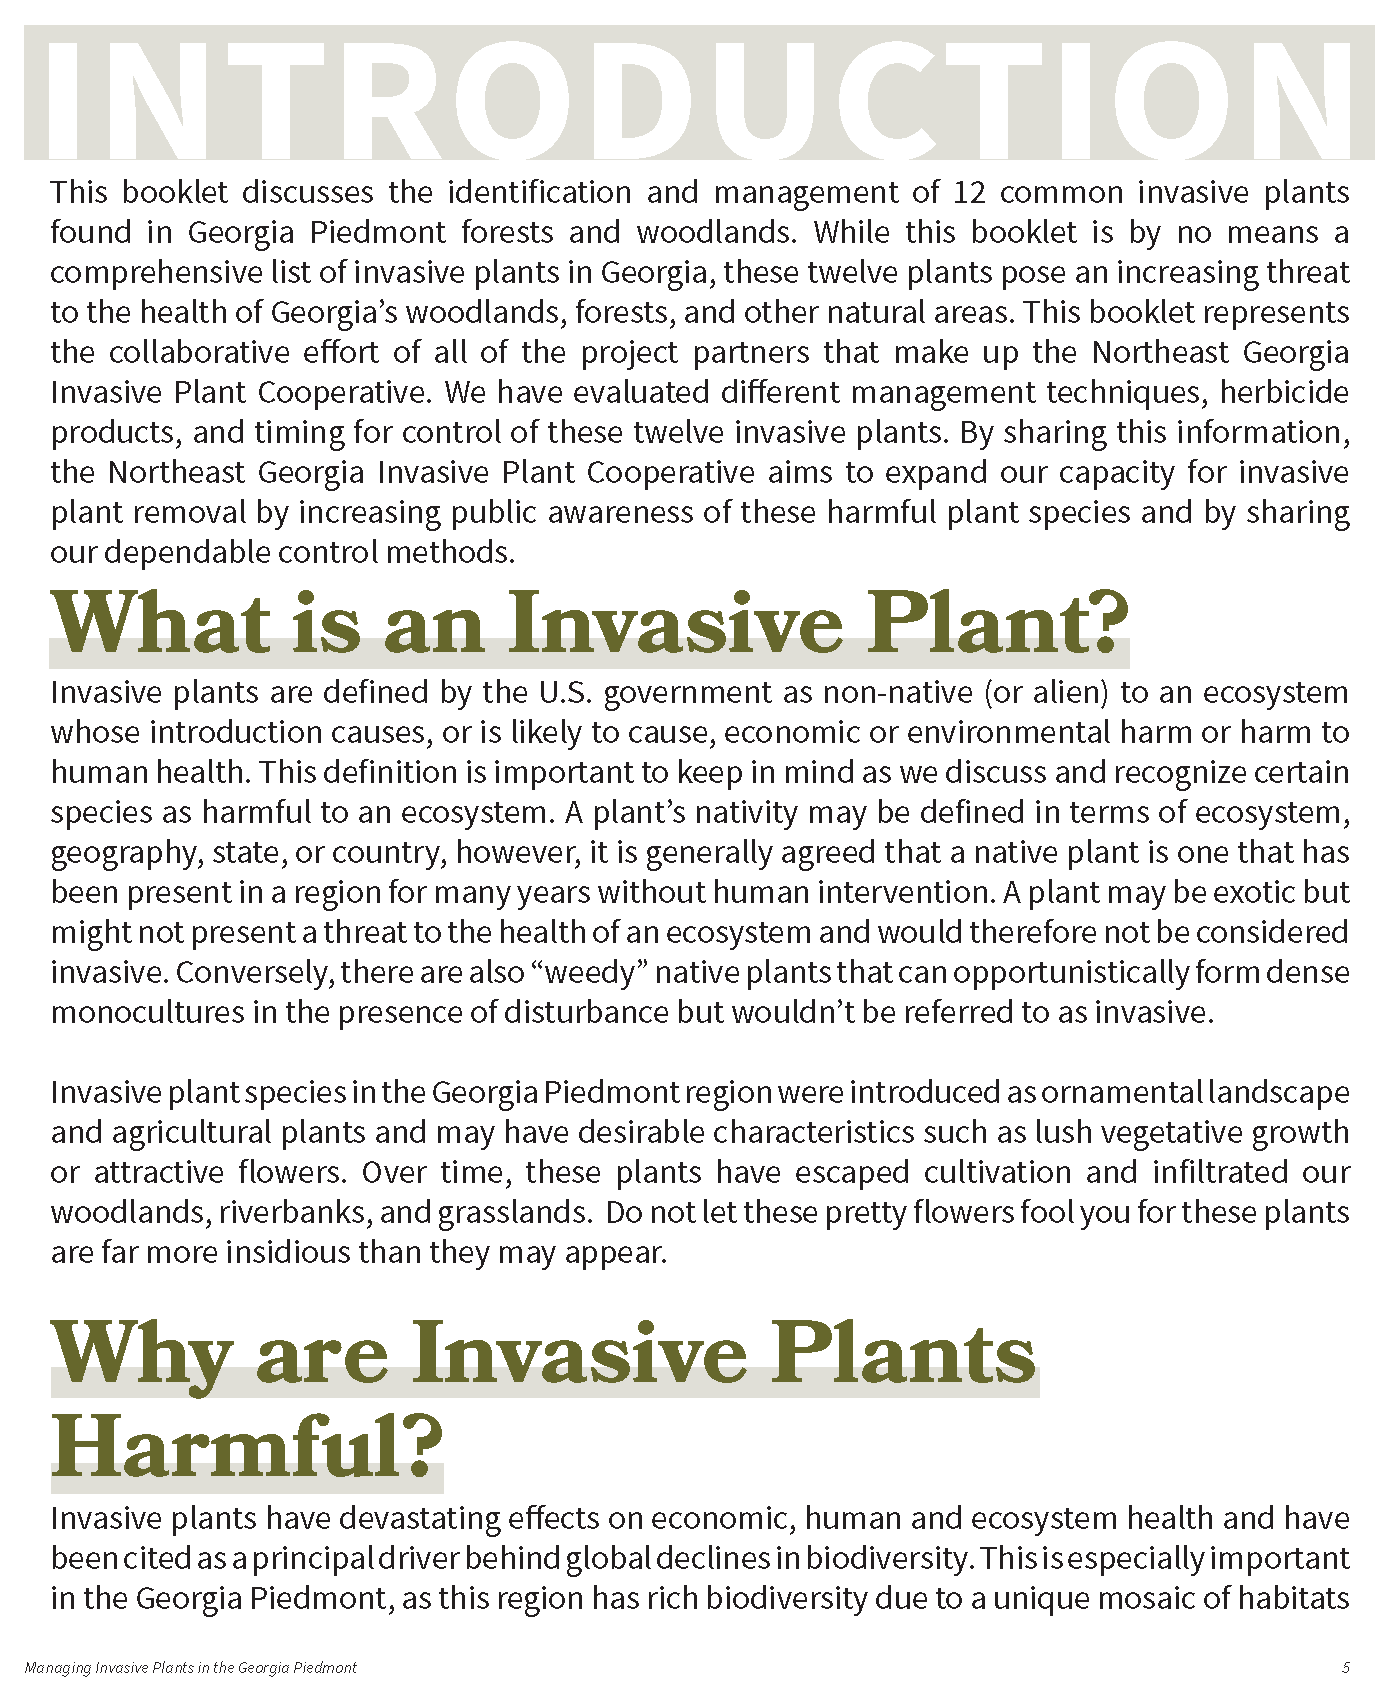 Managing Invasive Plants in the GA Piedmont for web_Page_04